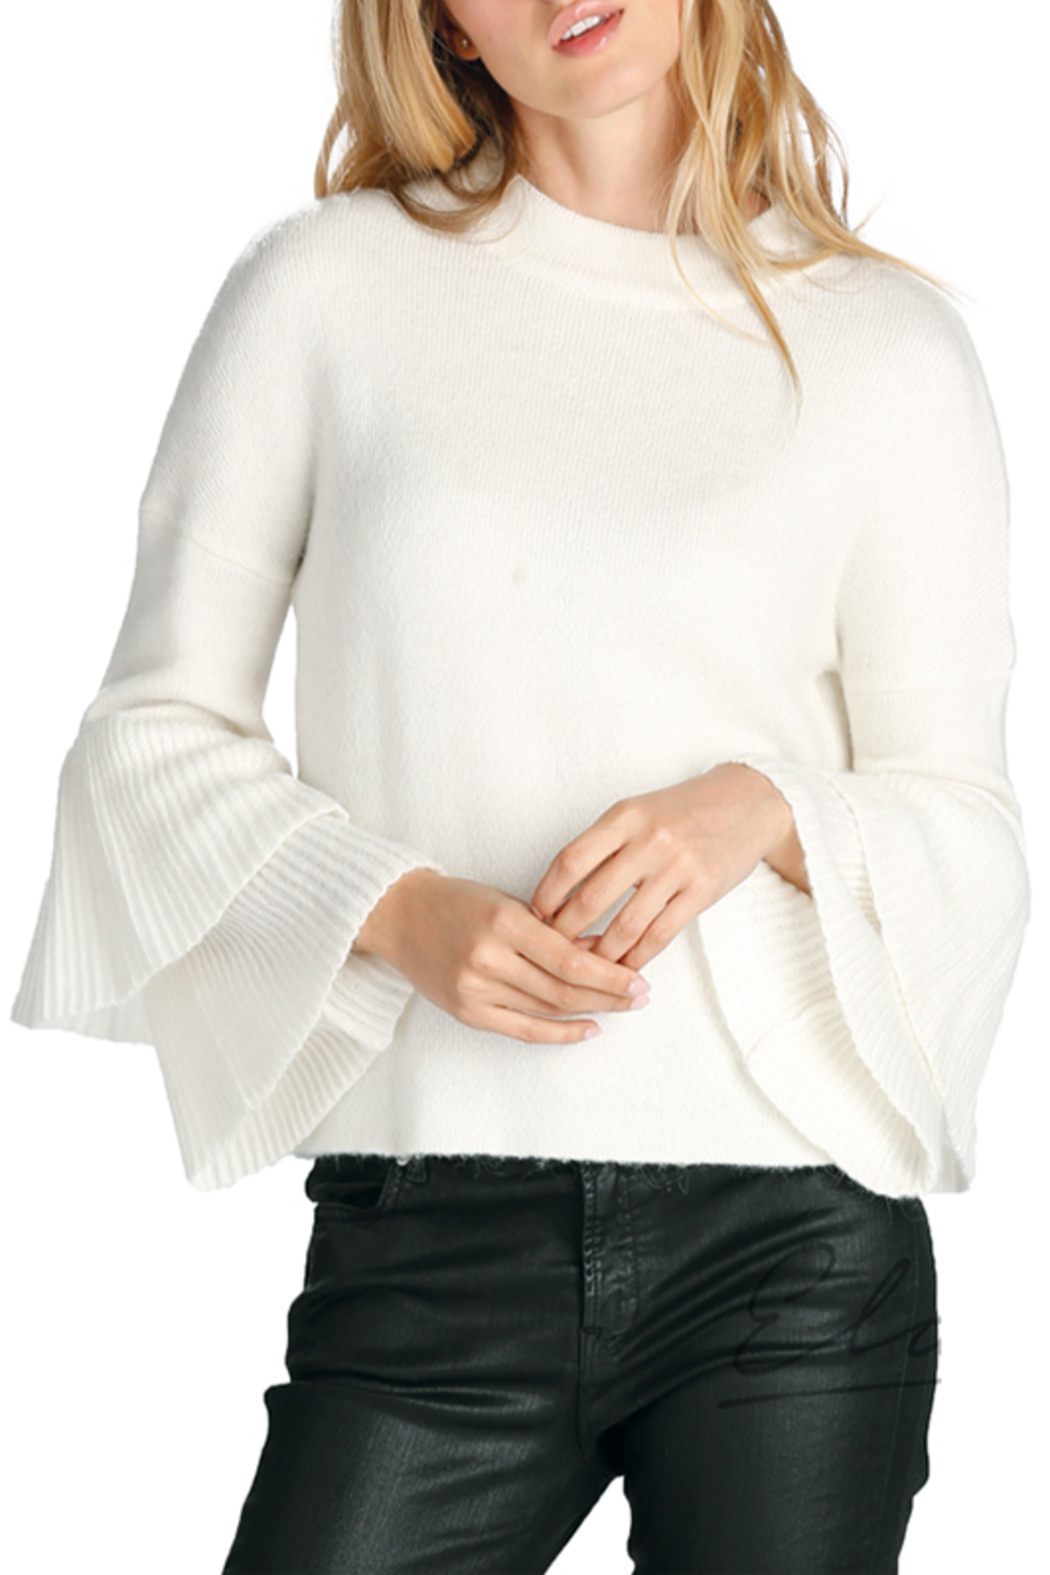 Elan Hi-Neck Ruffle Sleeve Sweater - Front Cropped Image